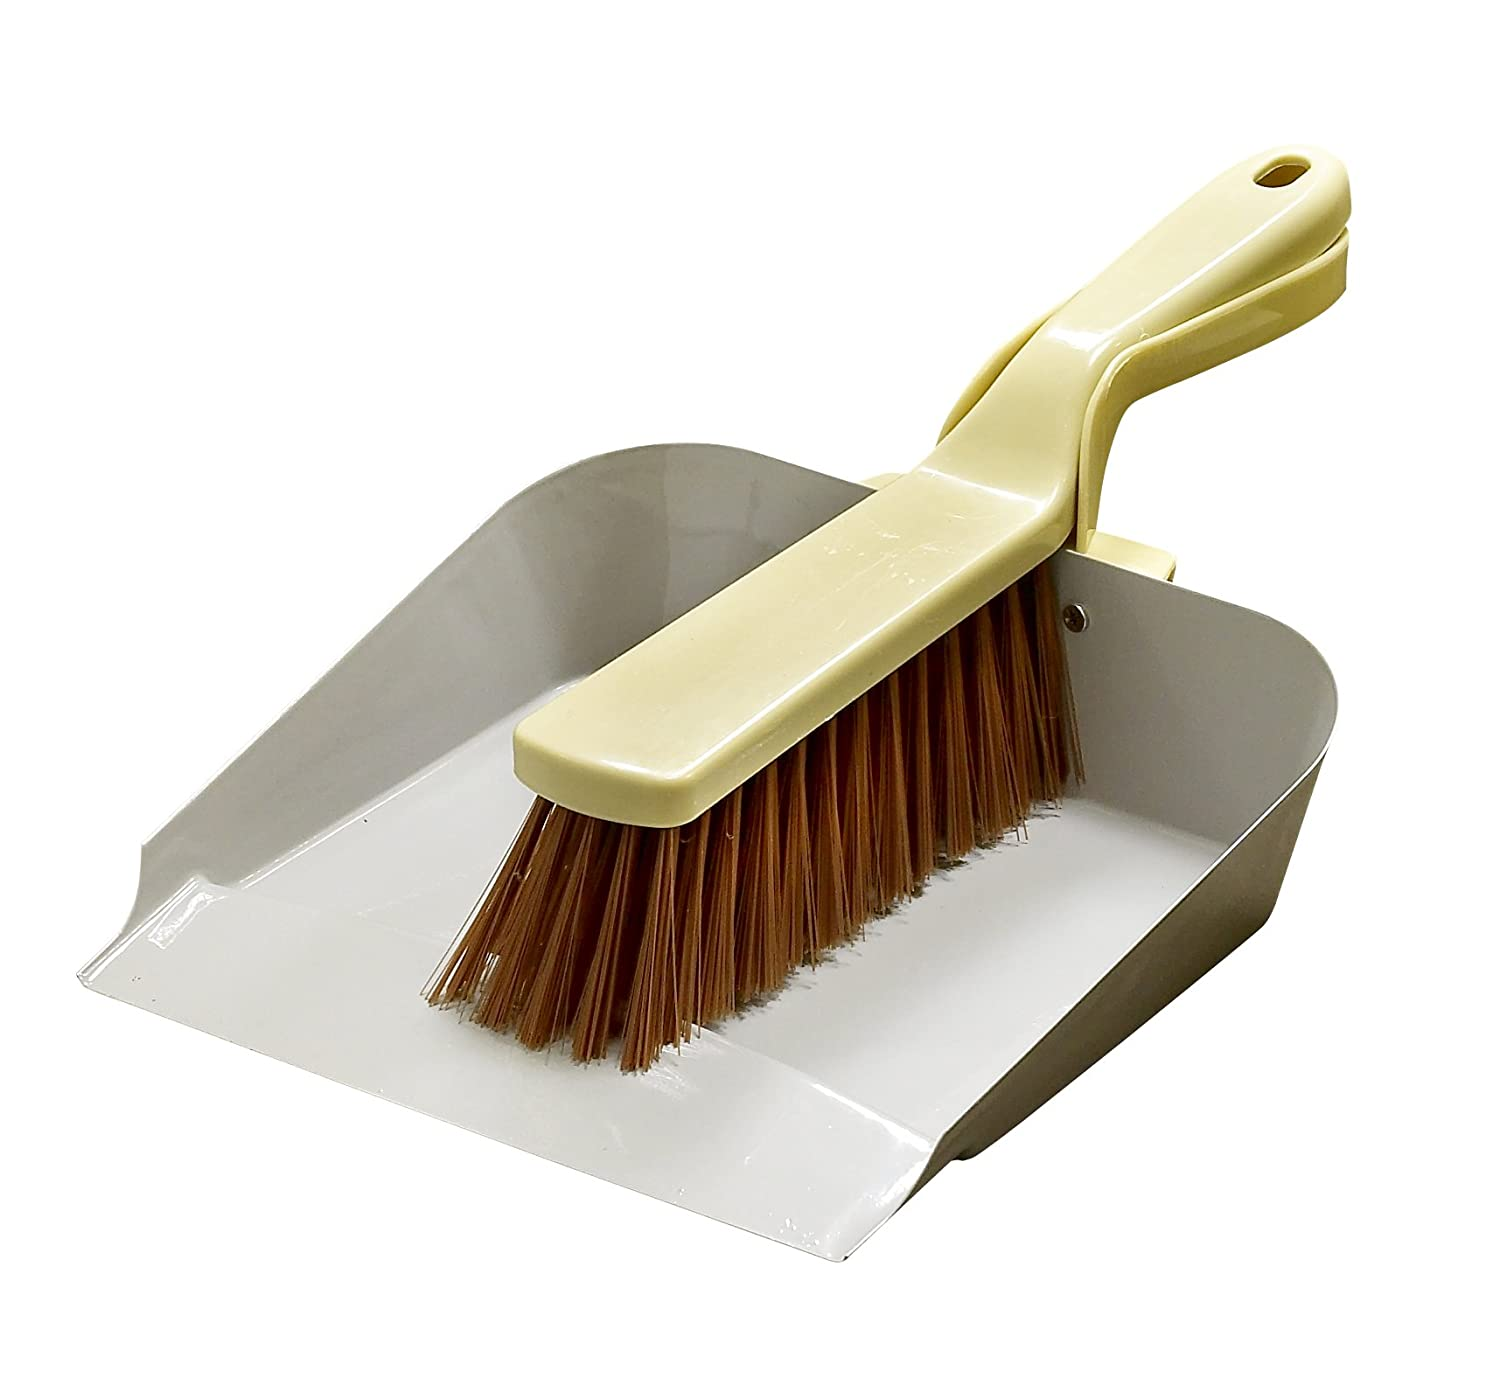 Lily and Brown Metal Dustpan and Brush LG Harris